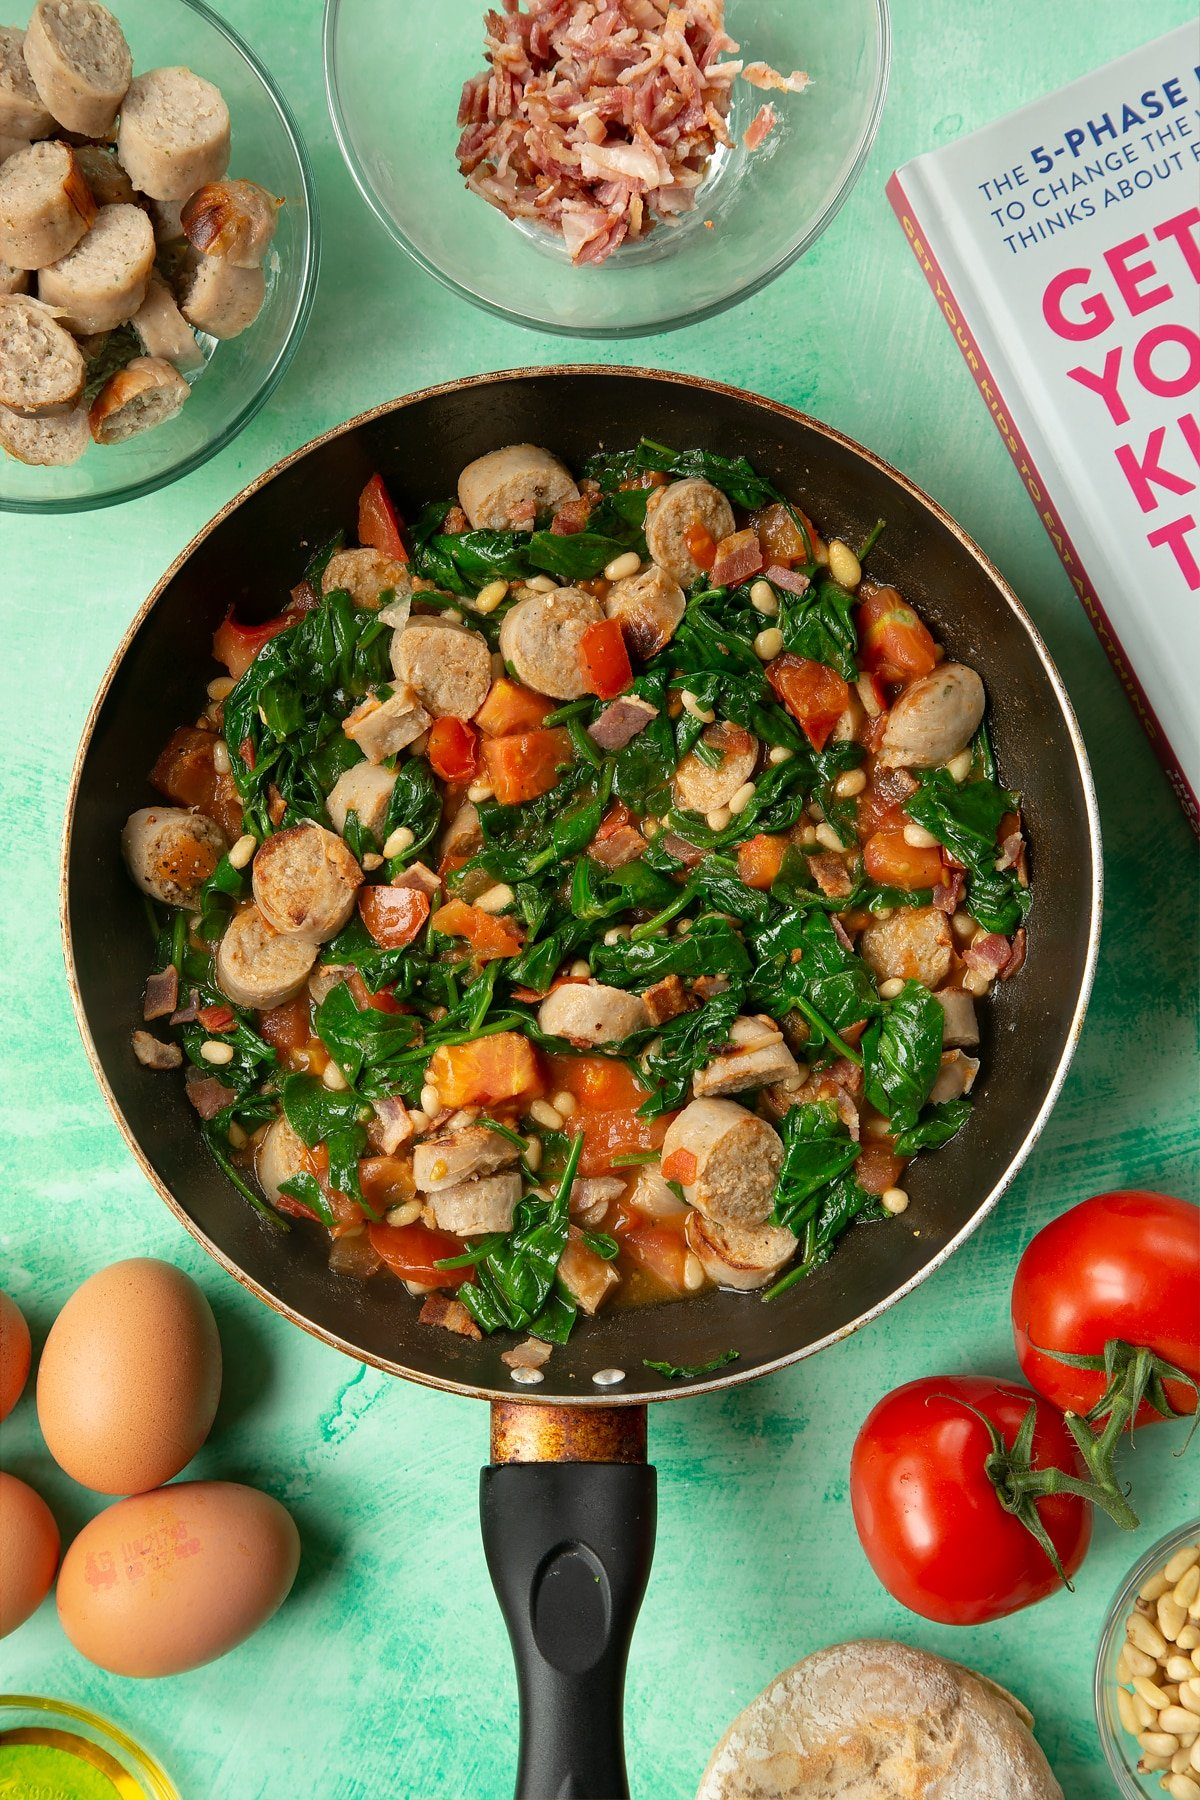 A frying pan containing fried sausage, bacon, chopped tomatoes, pine nuts and wilted spinach. The pan is surrounded by ingredients to make breakfast rolls.